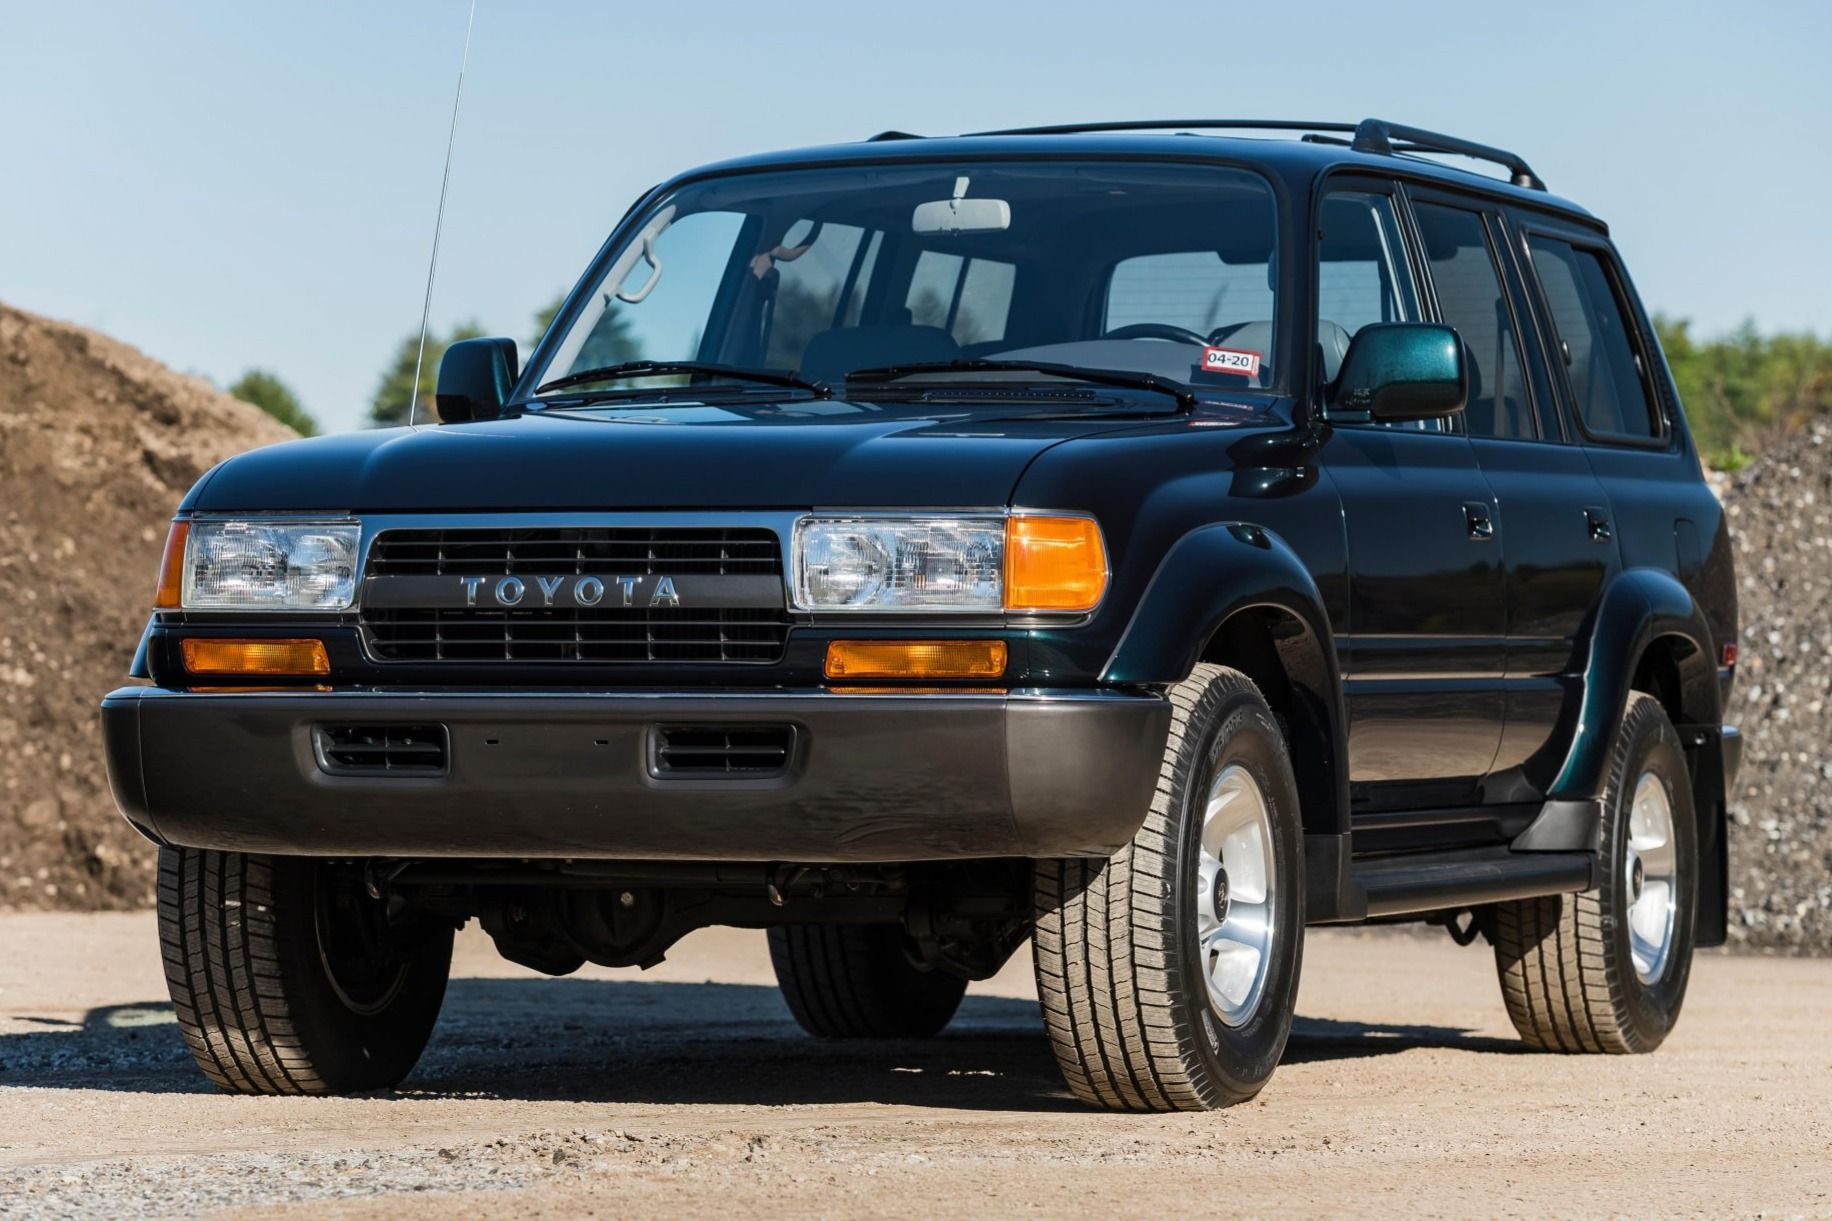 While Toyota is busy showing us the new generation of the Land Cruiser, an older 80 model with 27 years of age and only 1,000 miles (1,609 km) on the odo is set to go for more than U.S. $80,000 at an auction.